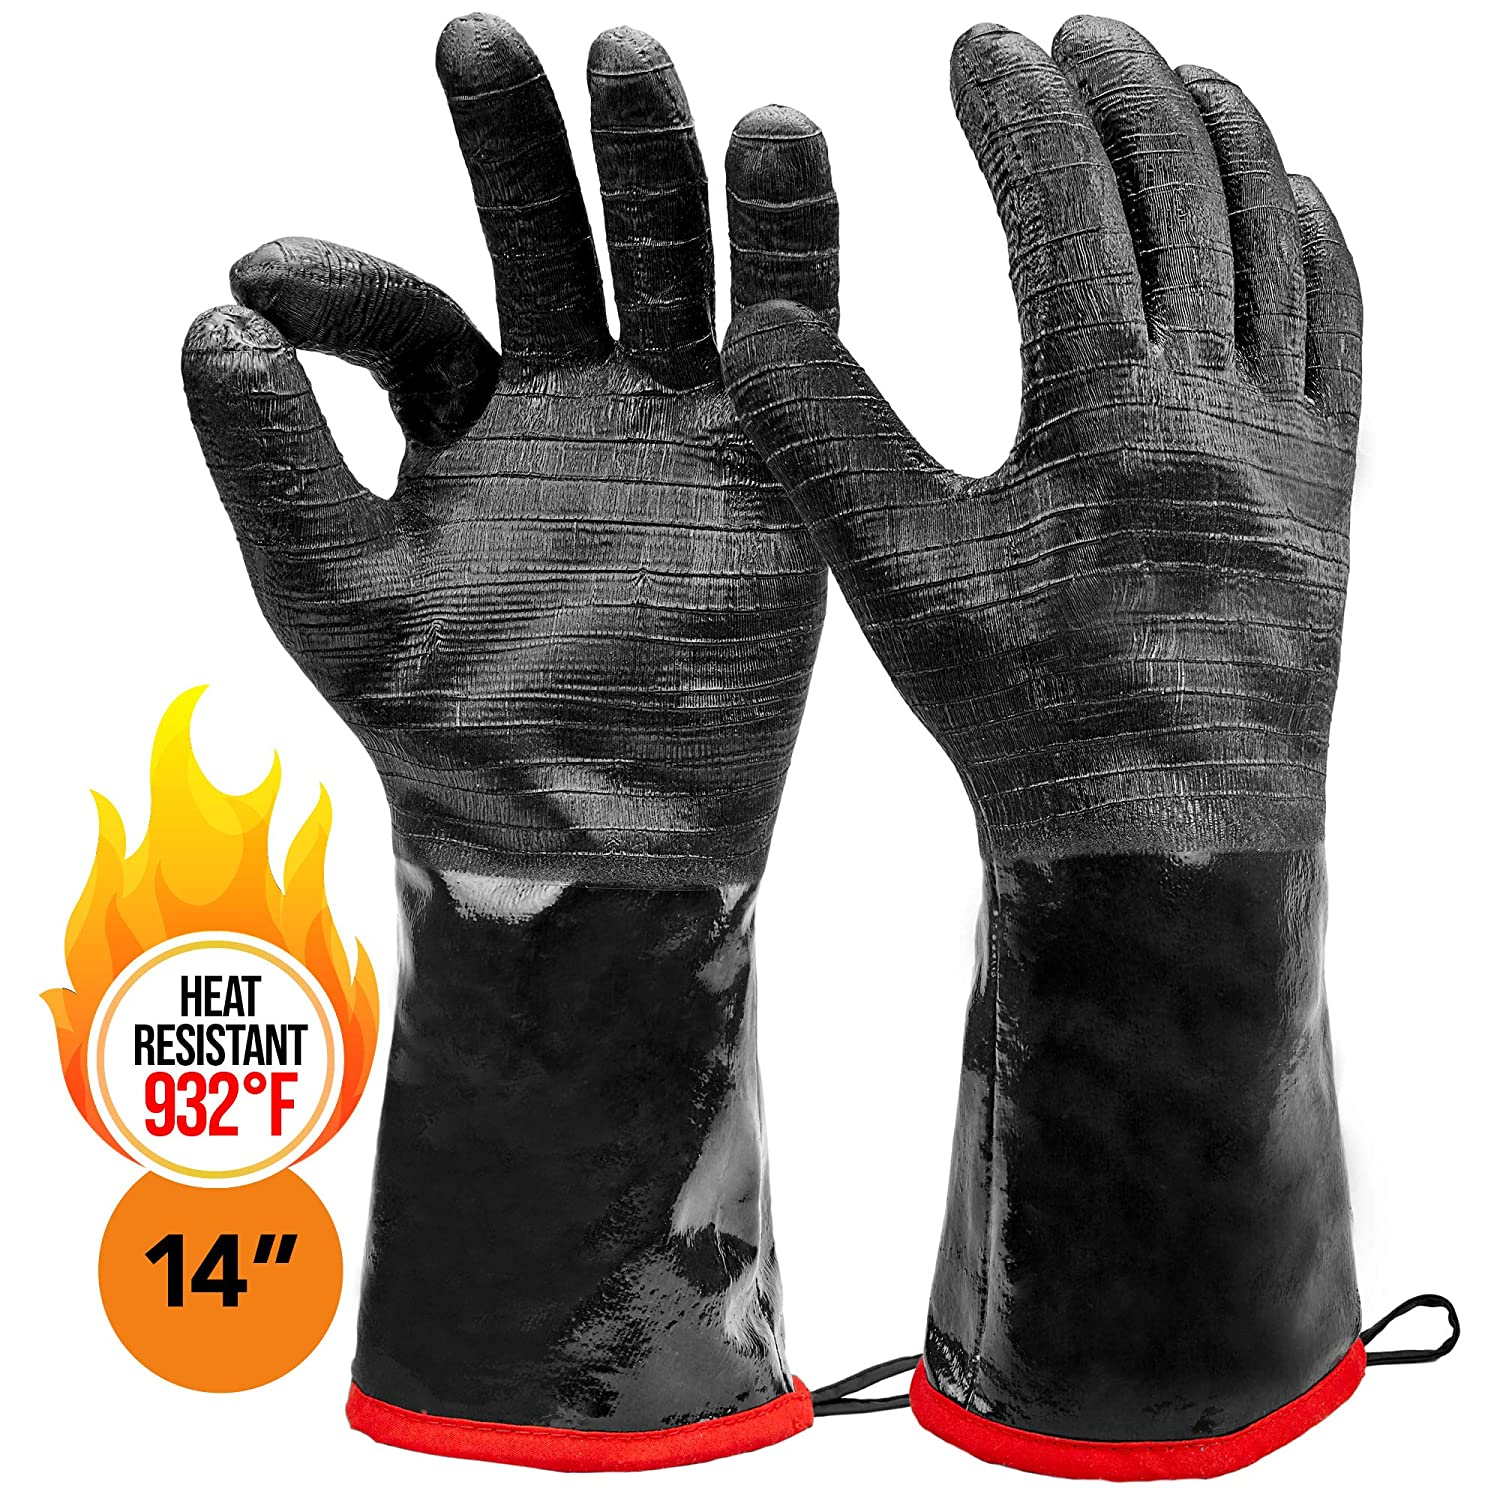 "Heatsistance Heat Resistant BBQ Gloves, 14"" Long Sleeve, Extra Large Textured Grip to Handle Wet, Greasy or Oily Foods Fire and Food Safe Turkey Fryer Oven Mitts for Smoker, Grills and Barbecue"